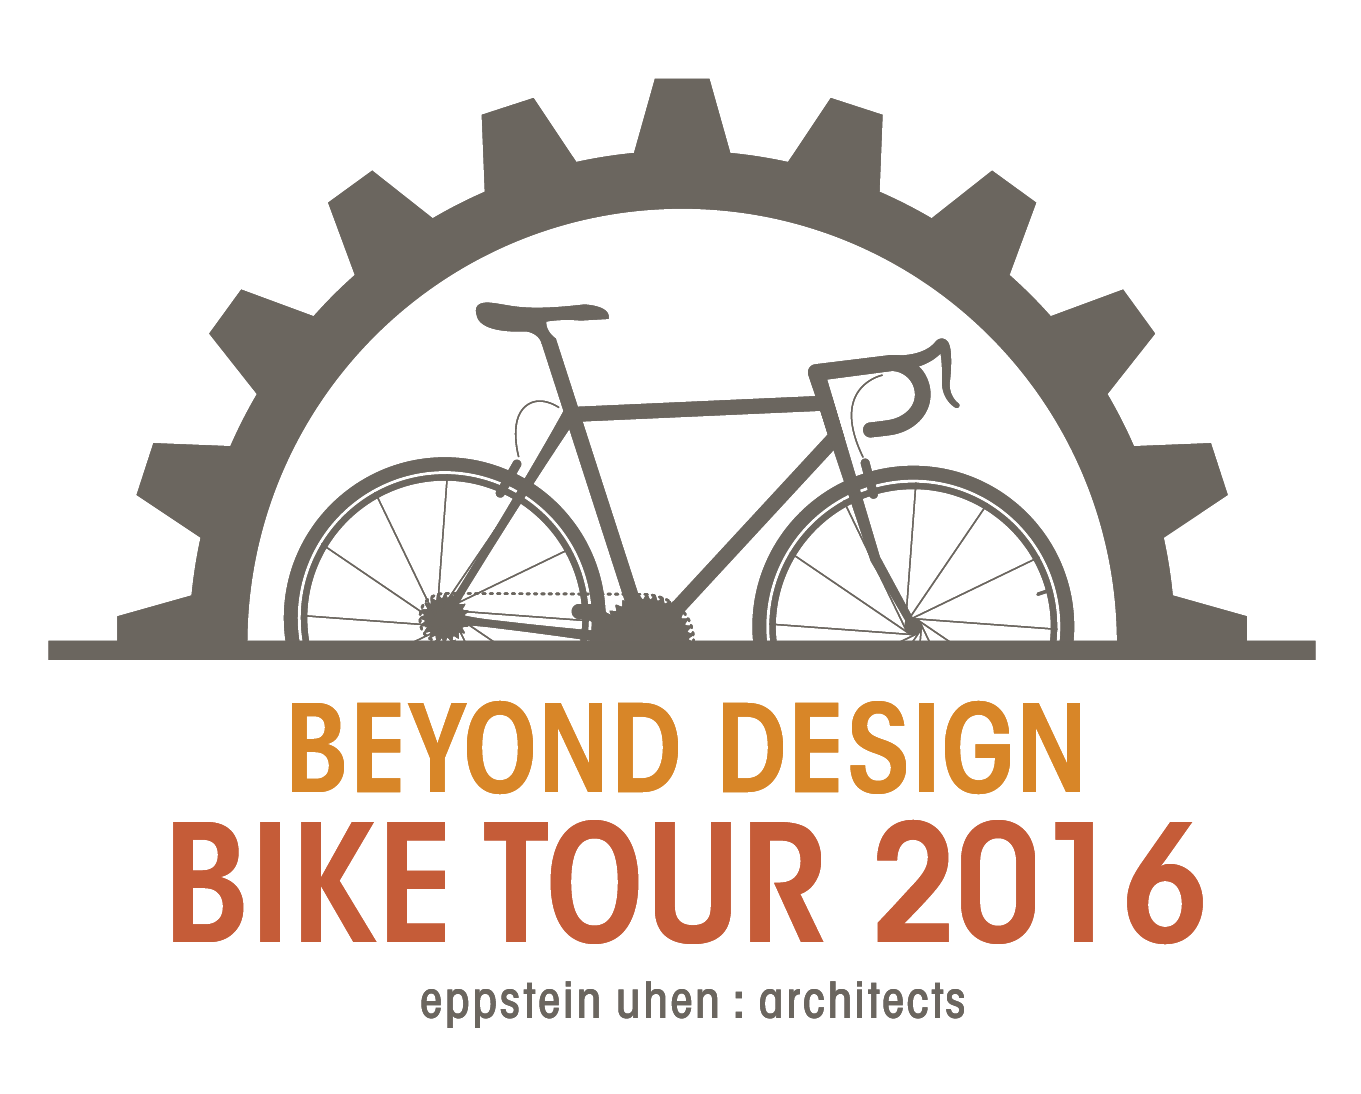 2016 Beyond Design Bike Tour (BDBT) Slide Image